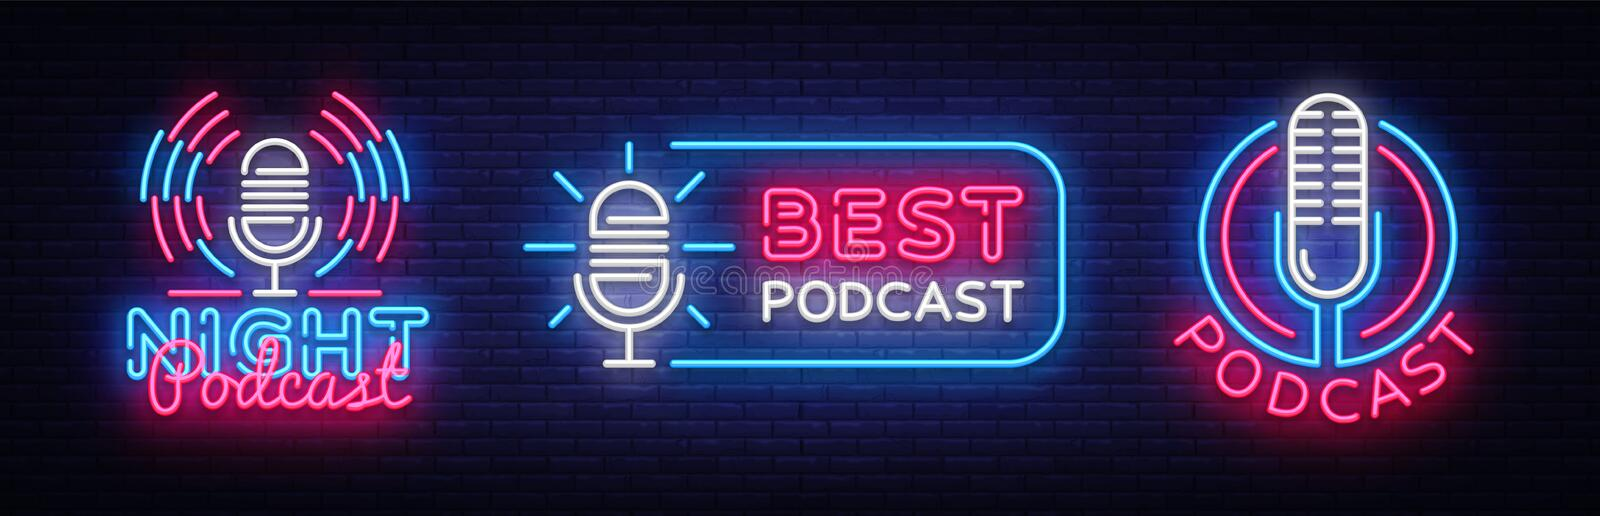 Podcast Neon sign collection vector design template. Podcast neon logo, light banner design element colorful modern royalty free illustration